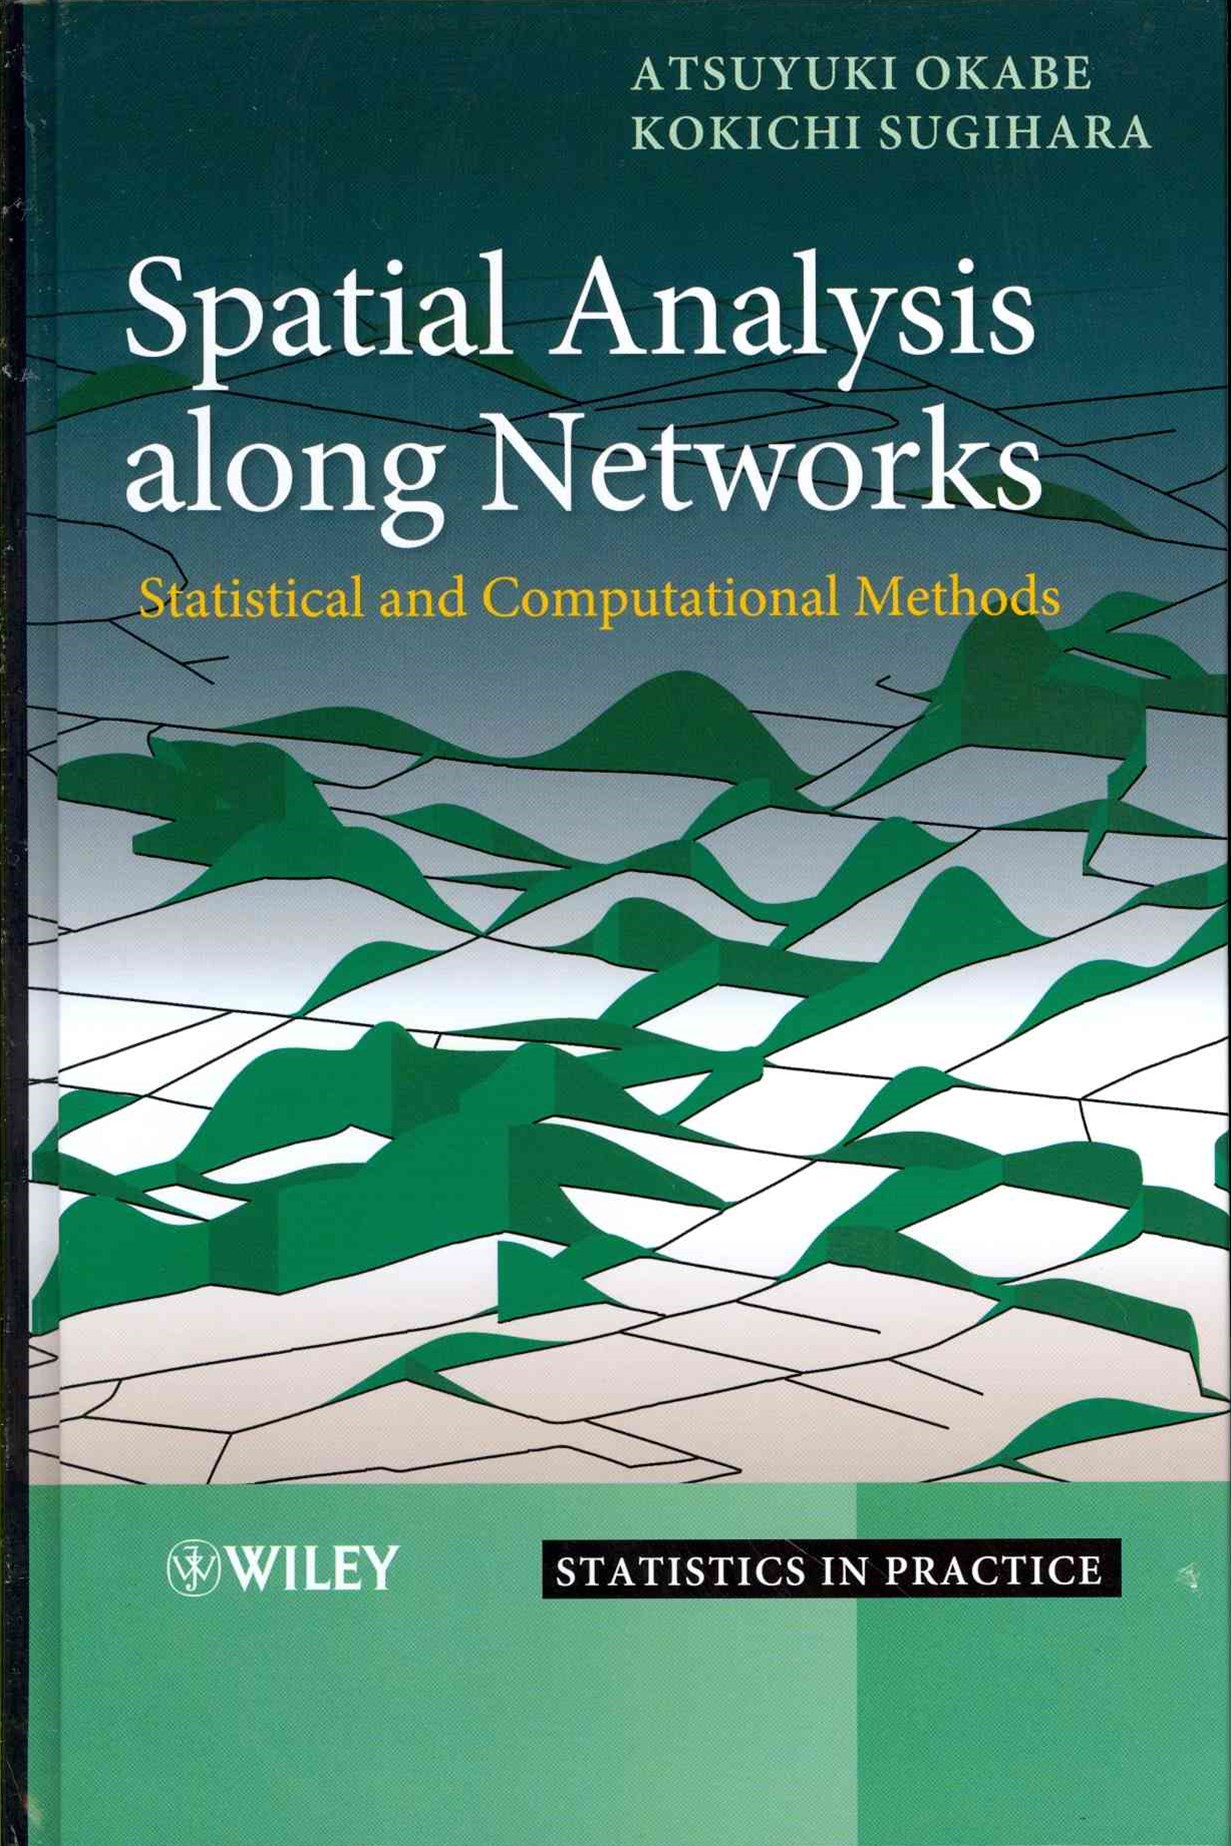 Spatial Analysis Along Networks - Statistical and Computational Methods